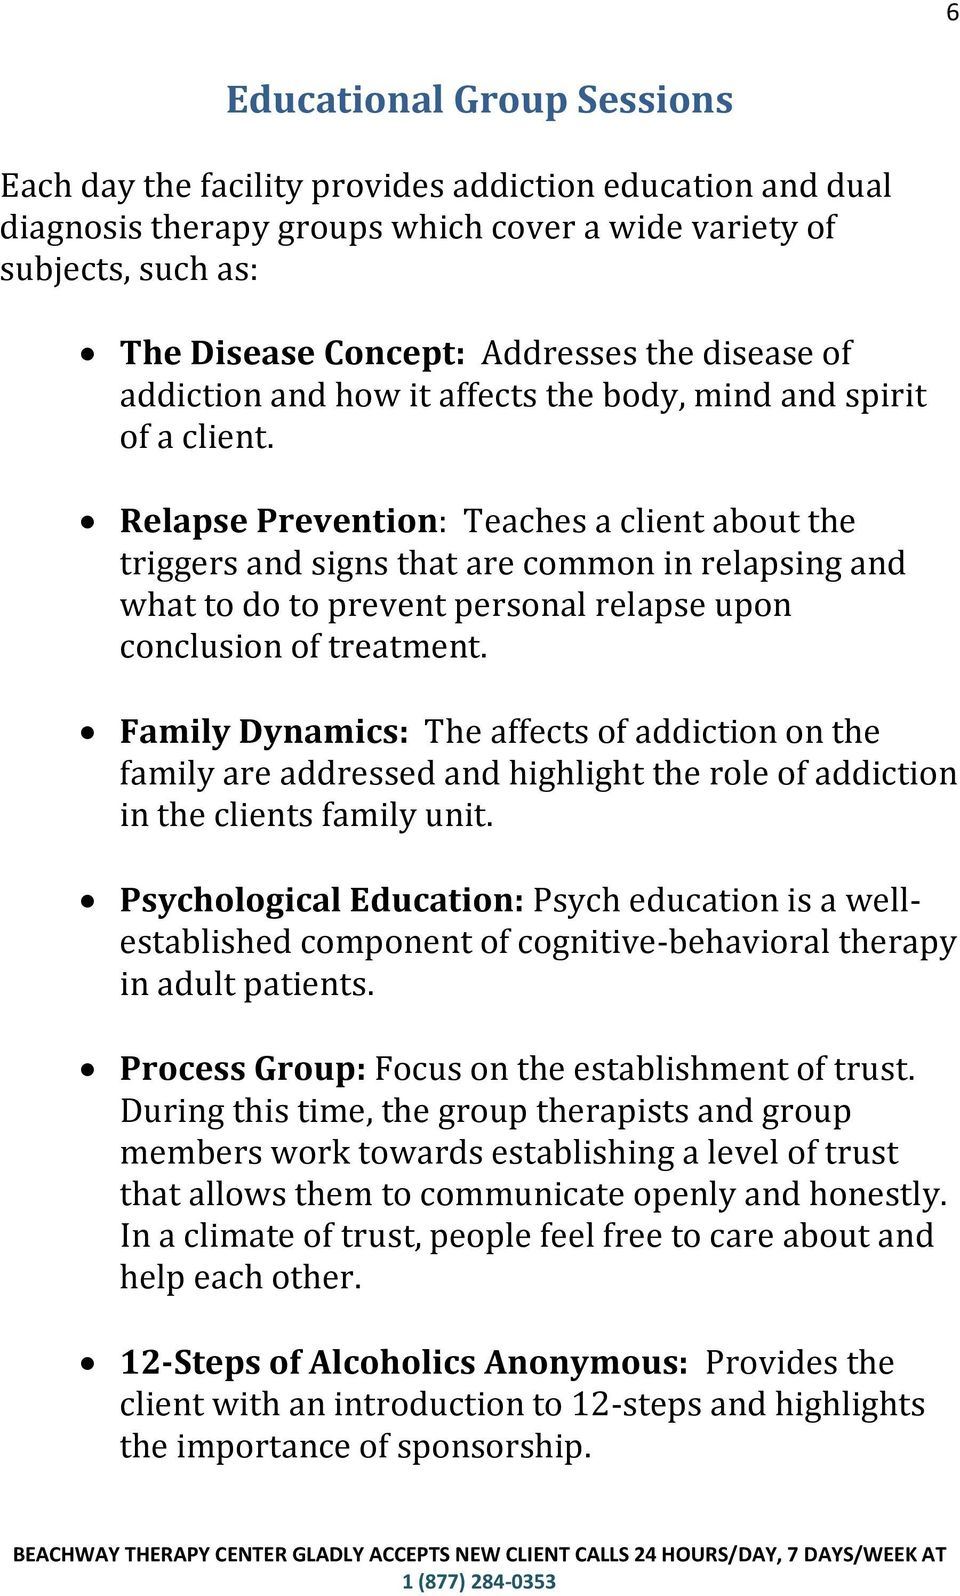 Relapse Prevention: Teaches a client about the triggers and signs that are common in relapsing and what to do to prevent personal relapse upon conclusion of treatment.